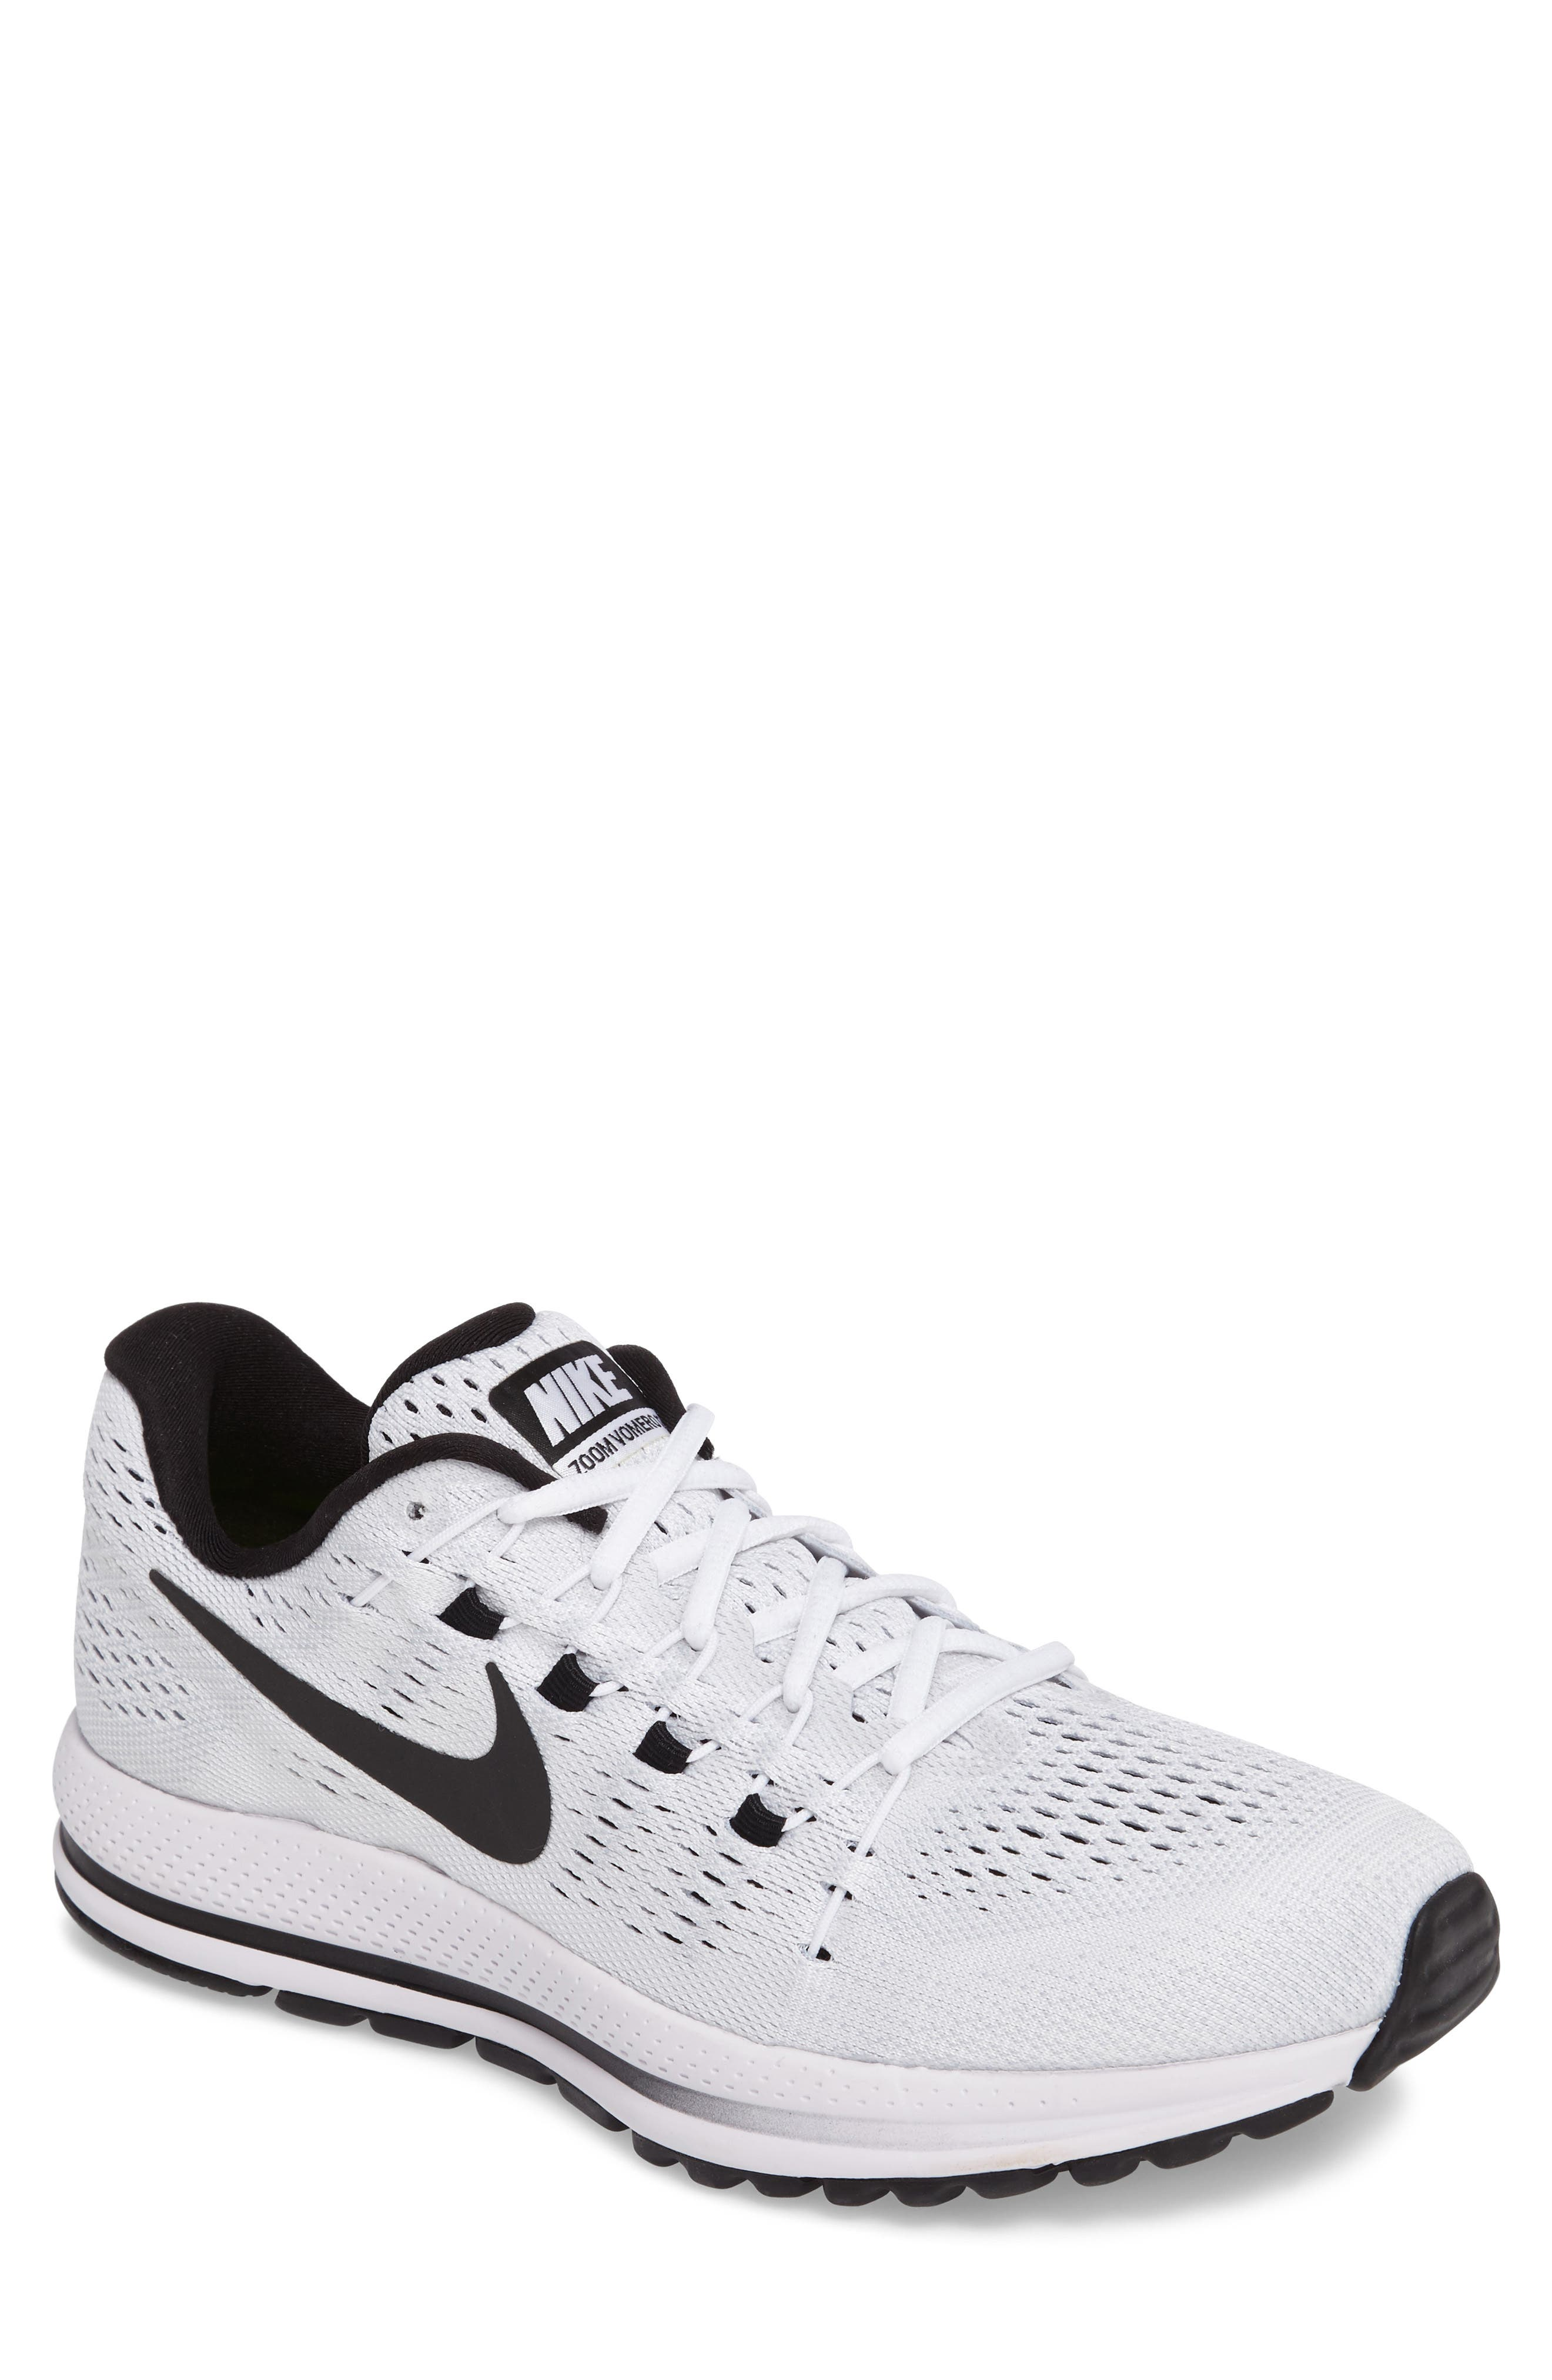 NIKE Air Zoom Vomero 12 Running Shoe, Main, color, 100